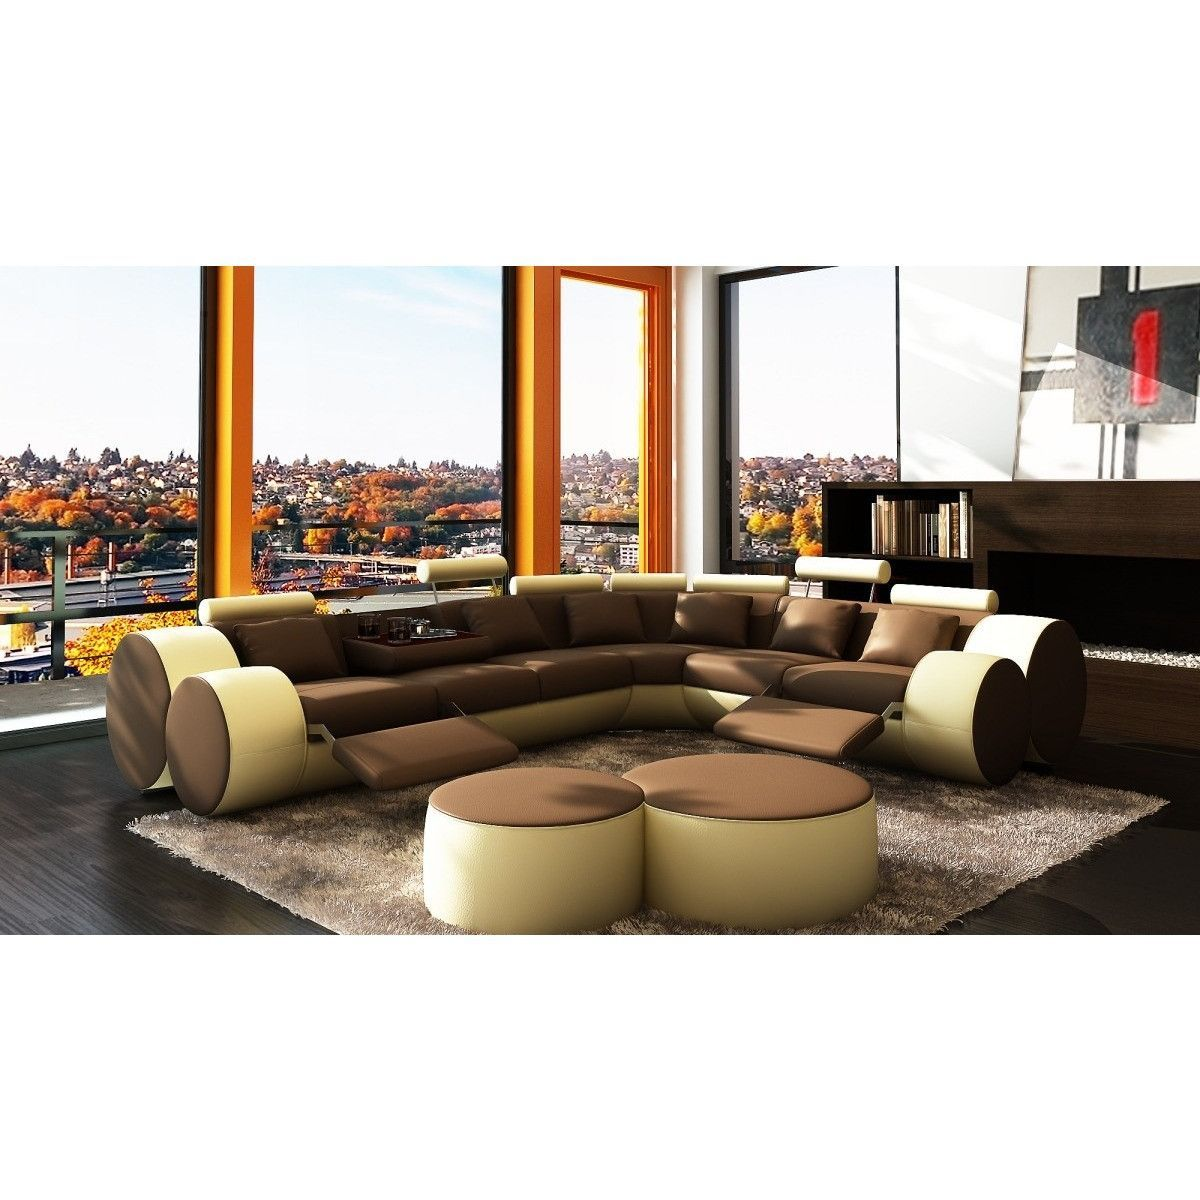 """Divani Casa 3087 - Modern Bonded Leather Sectional Sofa & Coffee Table. Dimensions: Overall: W121"""" x D100"""" x H30""""  3 - Seater: W72"""" x D39"""" x H30""""  2 - Seater: W51"""" x D39"""" x H30""""   Corner: W49"""" x D49"""" x H30""""  Seat Depth: 24""""  Seat Height: 18"""" Color: Other Finish:   - Modern ContemporaryRound Shape DesignUpholstered in bonded leather where your body touchesElegant left and right reclinersAdjustable Logged shaped head restTwo beautiful coffee tables includedThrow pillows includedMulti-toned…"""